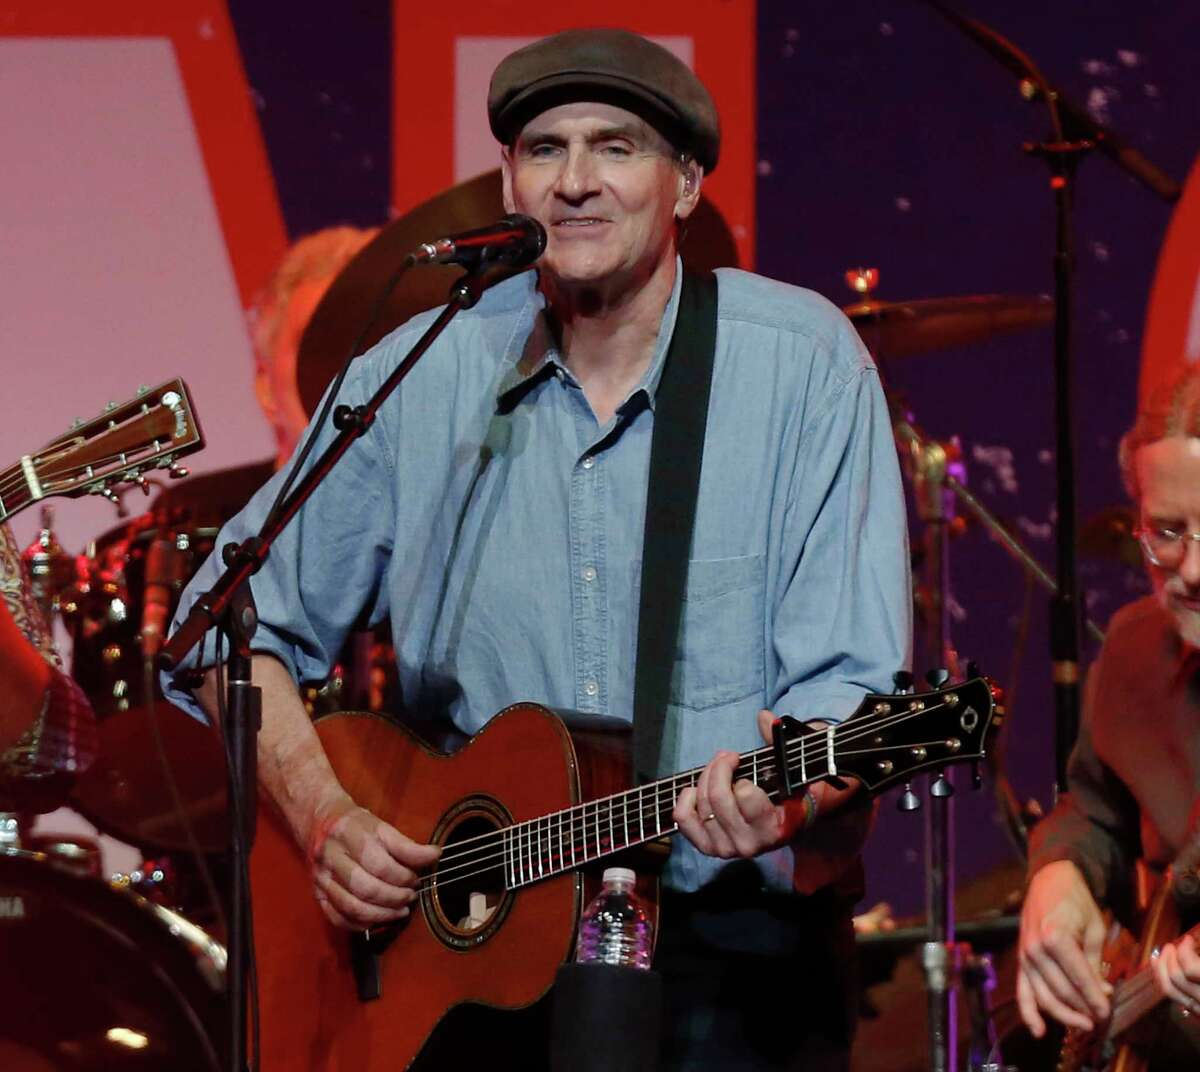 FILE - In this May 30, 2013 file photo, James Taylor performs at the Boston Strong Concert: An Evening of Support and Celebration at the TD Garden, in Boston. (Photo by Bizuayehu Tesfaye/Invision/AP, file)